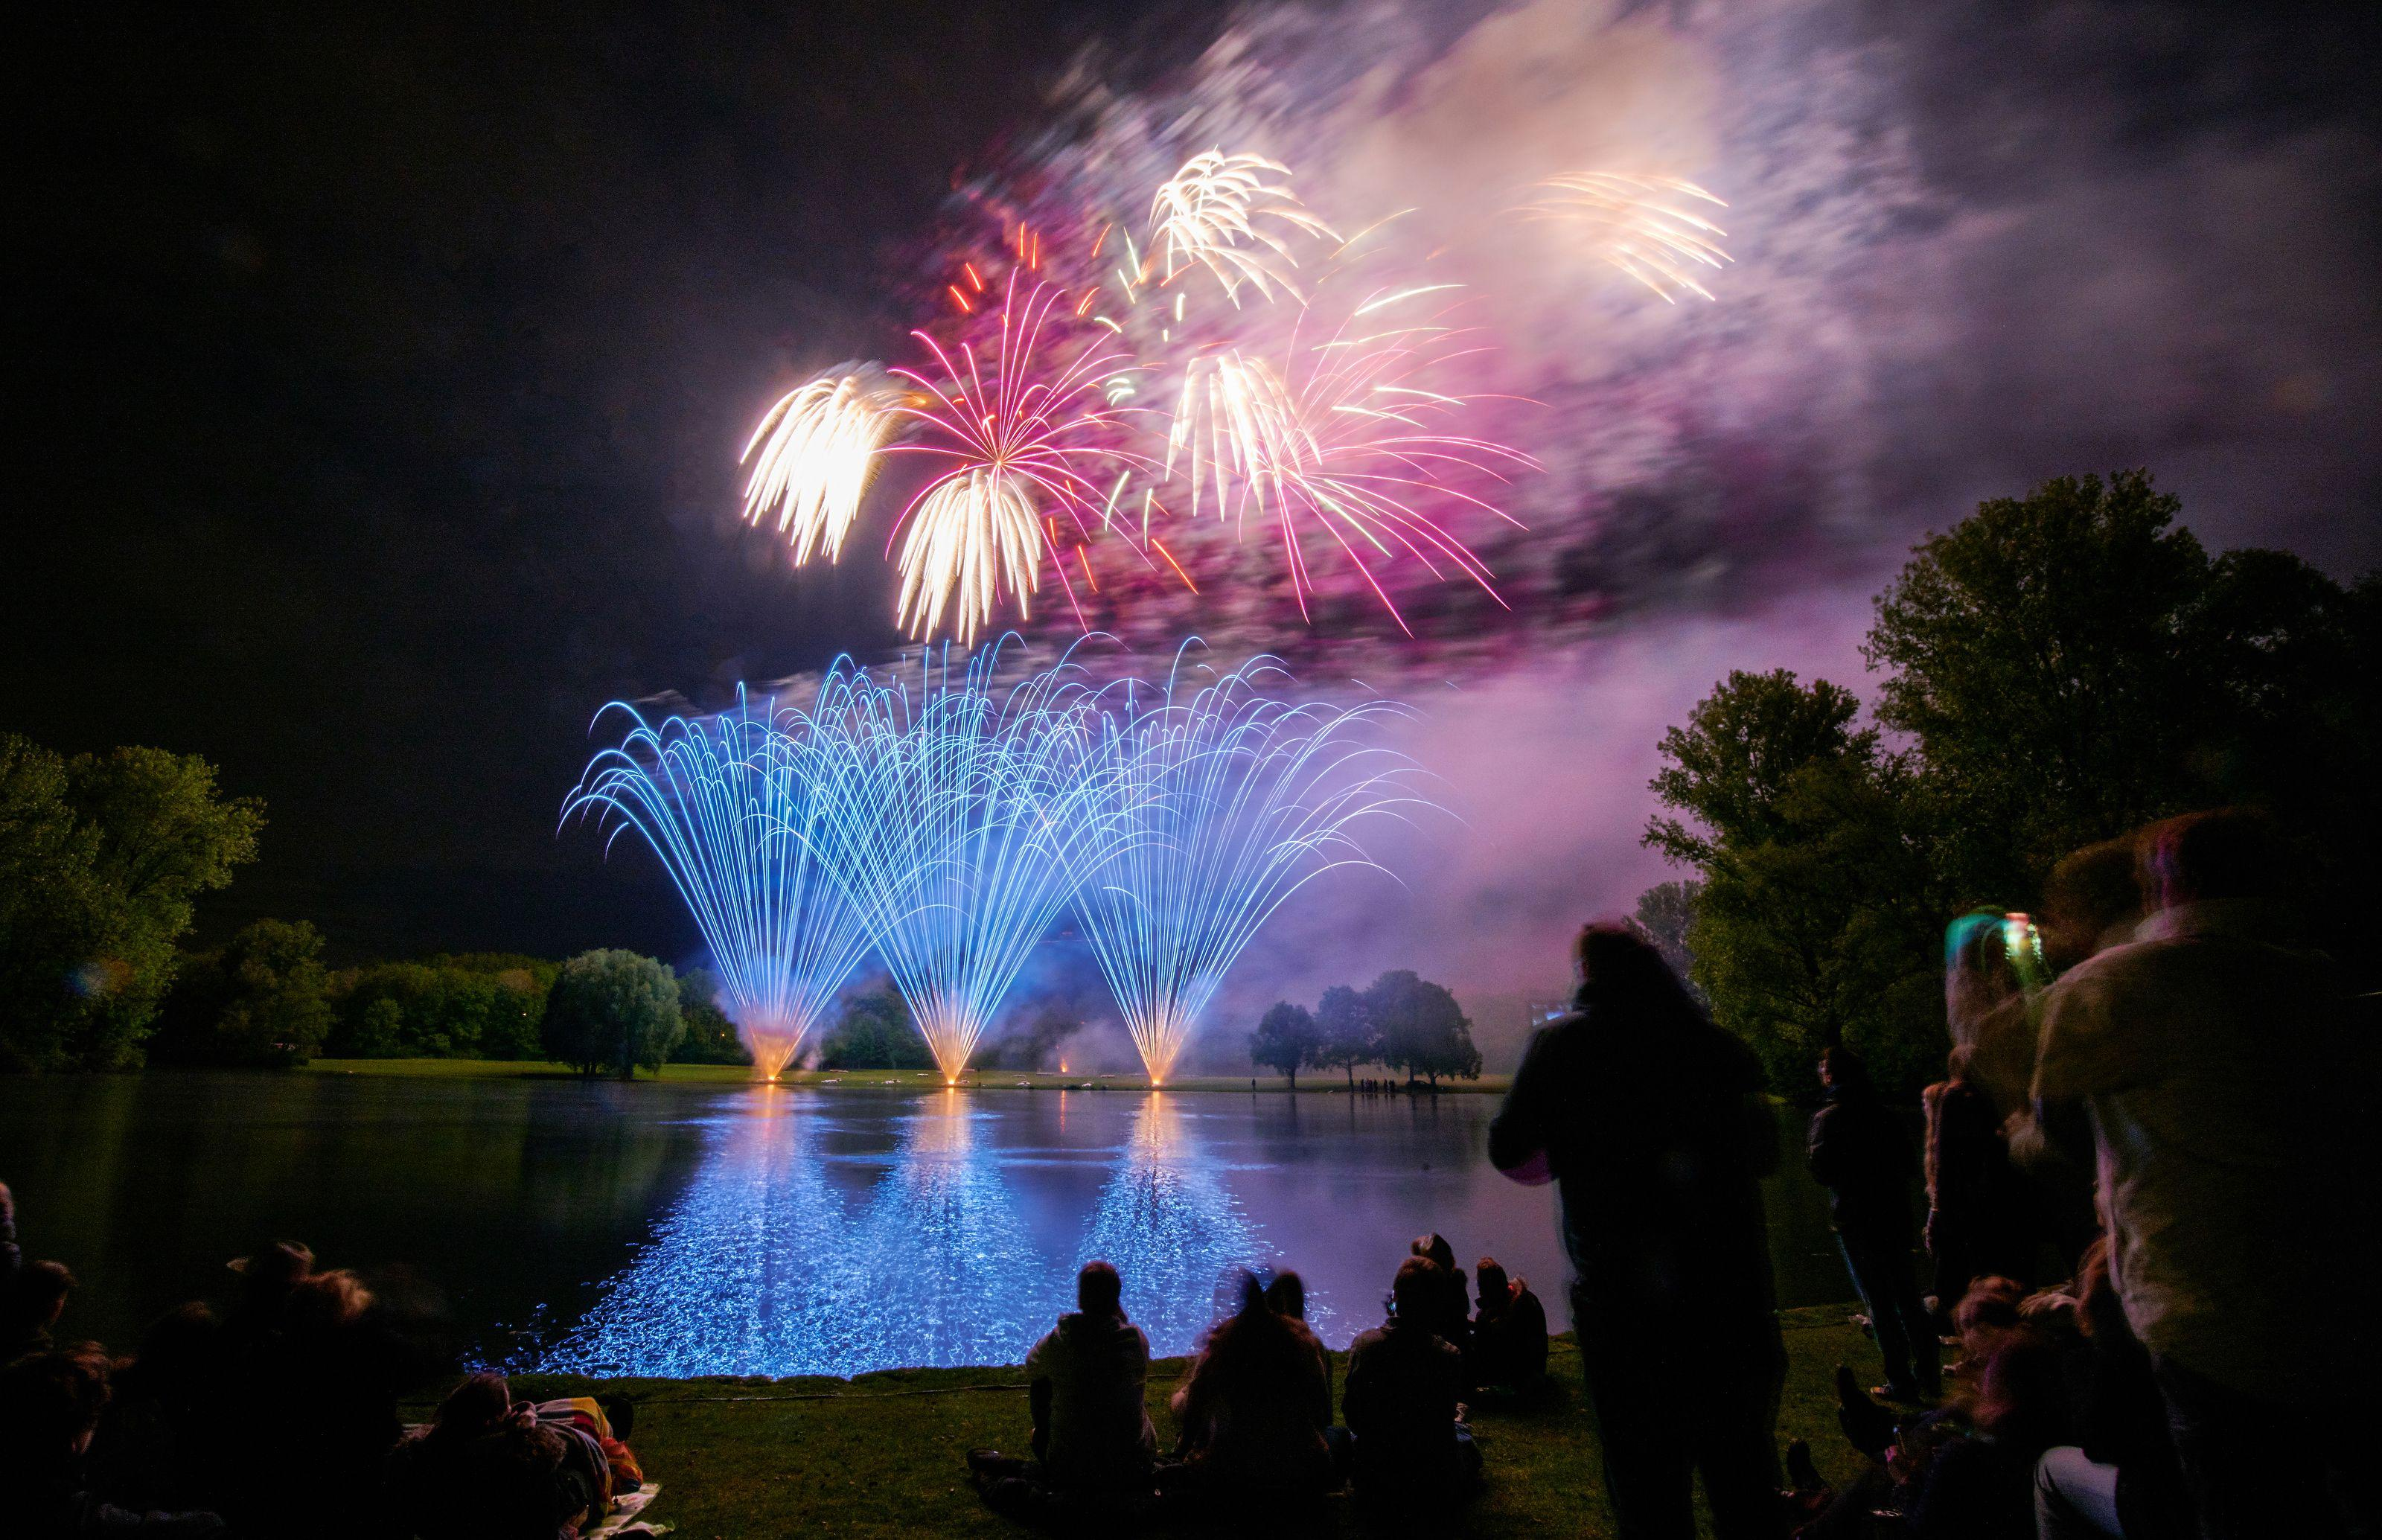 """People watch fireworks fired along the River Rhine during the annual """"Rhine in flames"""" festival on May 5, 2019 in Bonn. (Photo by Volker Lannert / dpa / AFP) / Germany OUT        (Photo credit should read VOLKER LANNERT/AFP/Getty Images)"""